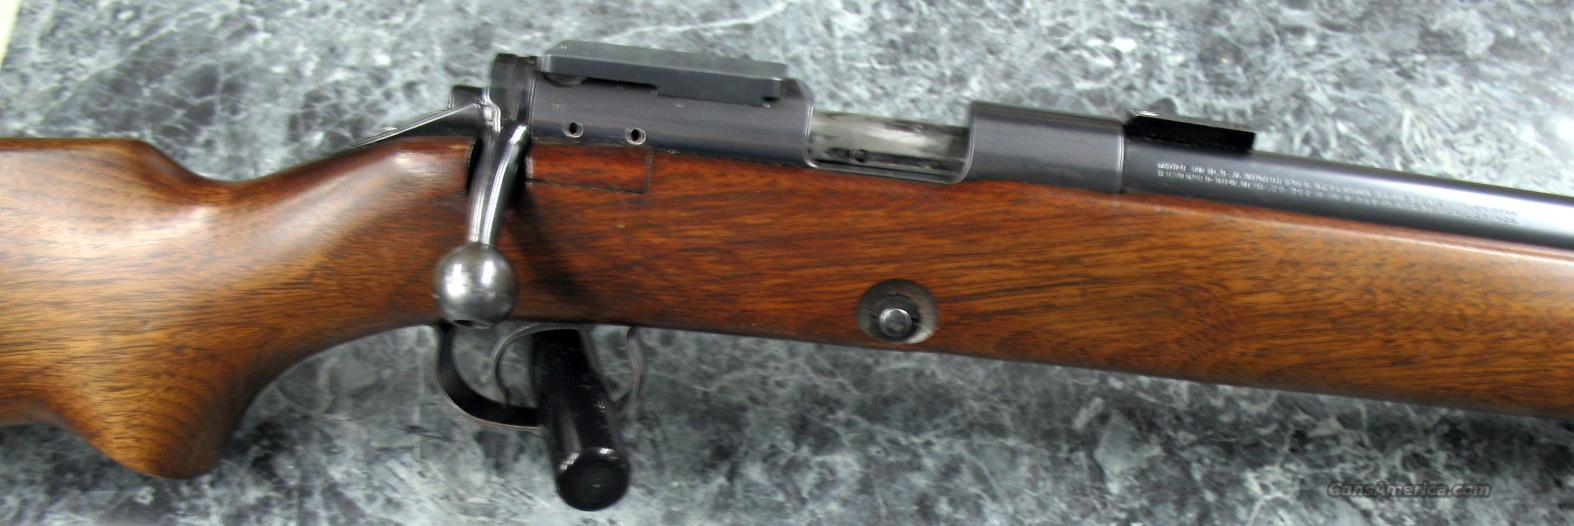 "Win.Md 52 Target 28""Stand.Bbl Made in 1932  Guns > Rifles > Winchester Rifles - Modern Bolt/Auto/Single > Other Bolt Action"